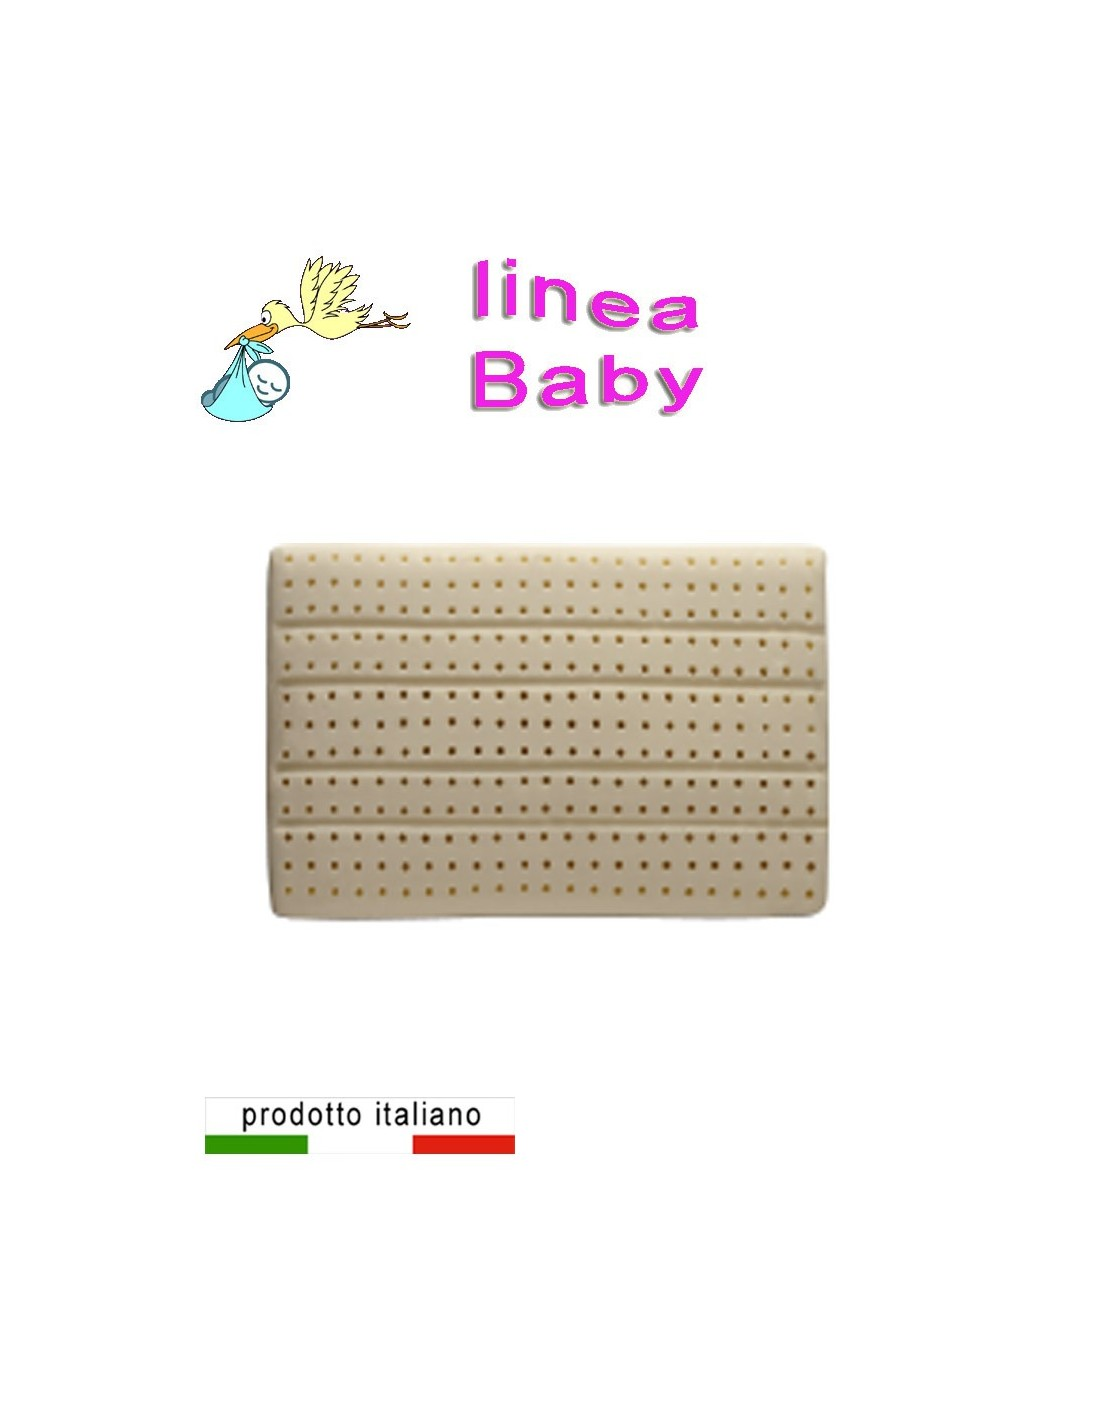 Cuscino lattice antisoffoco specifico per il bambino antiacaro